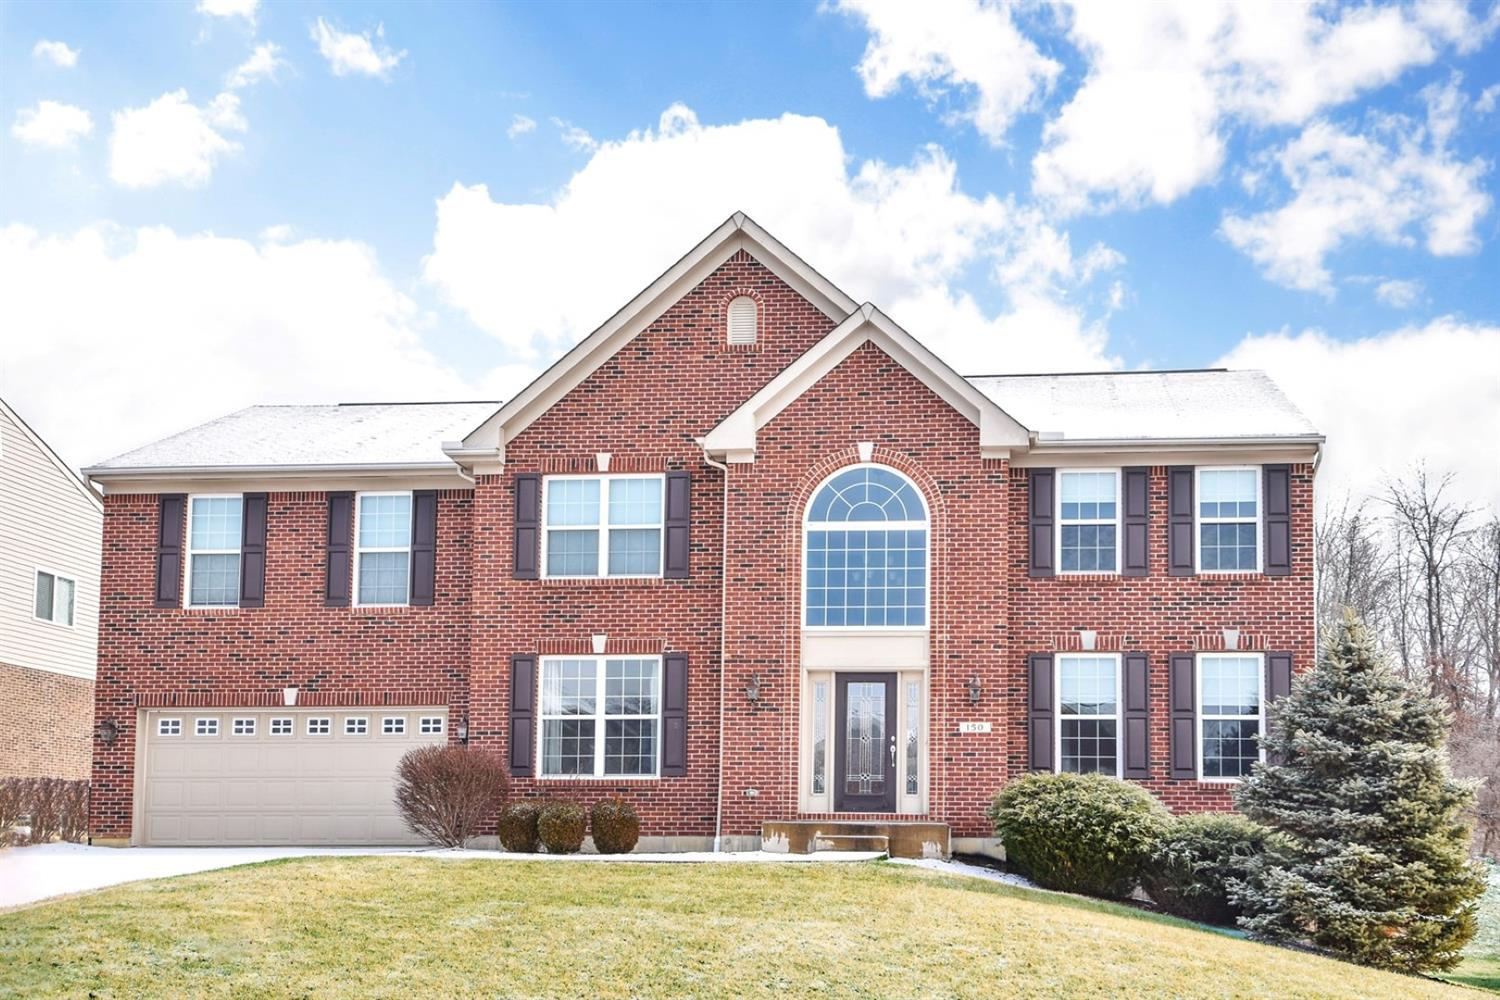 150 Edgefield Dr Cleves, OH